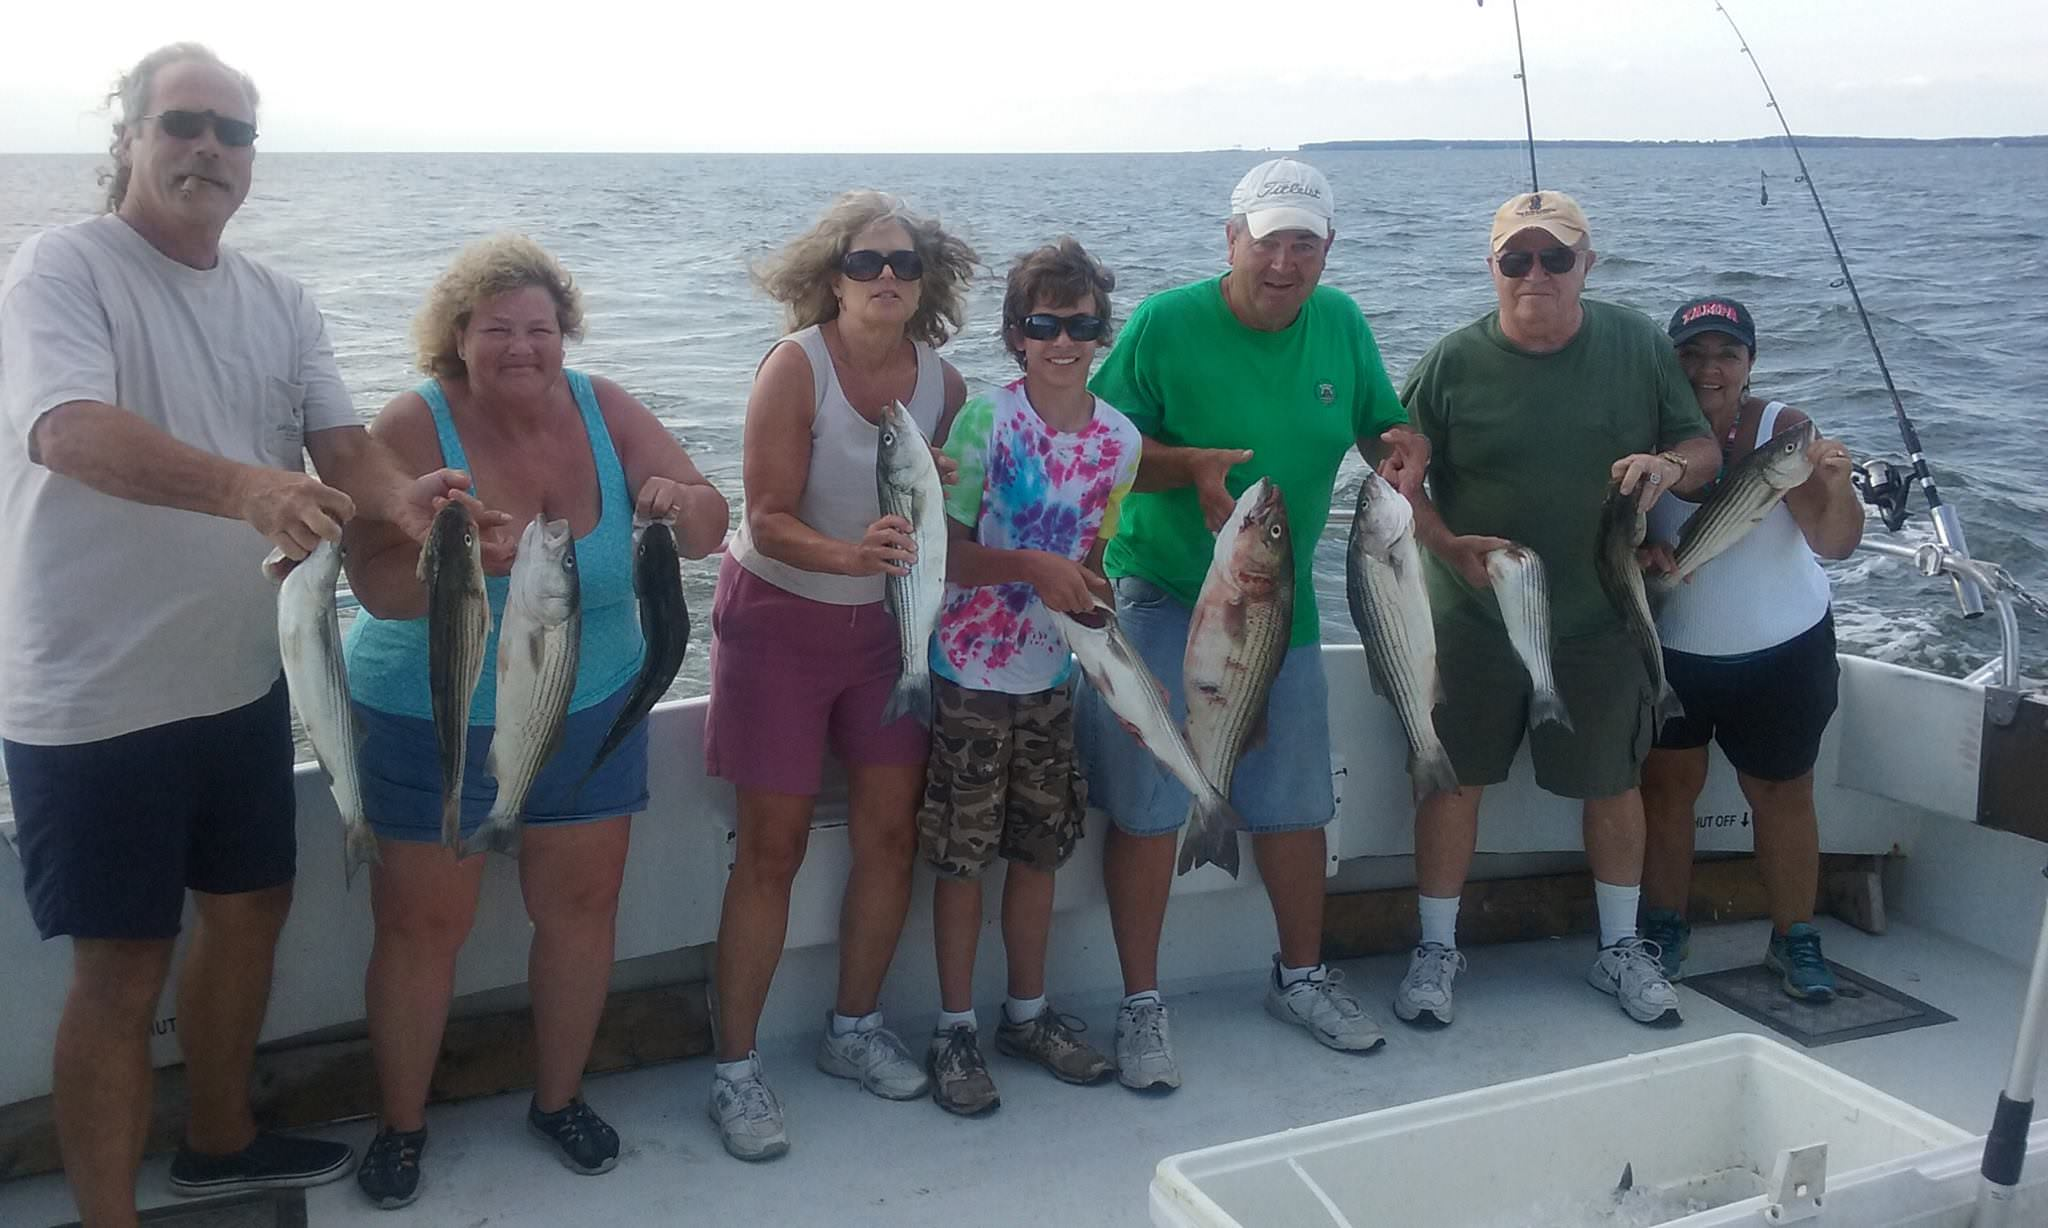 Chumming For Striped Bass On The Chesapeake Bay! Sawyer Chesapeake Bay Fishing Charters